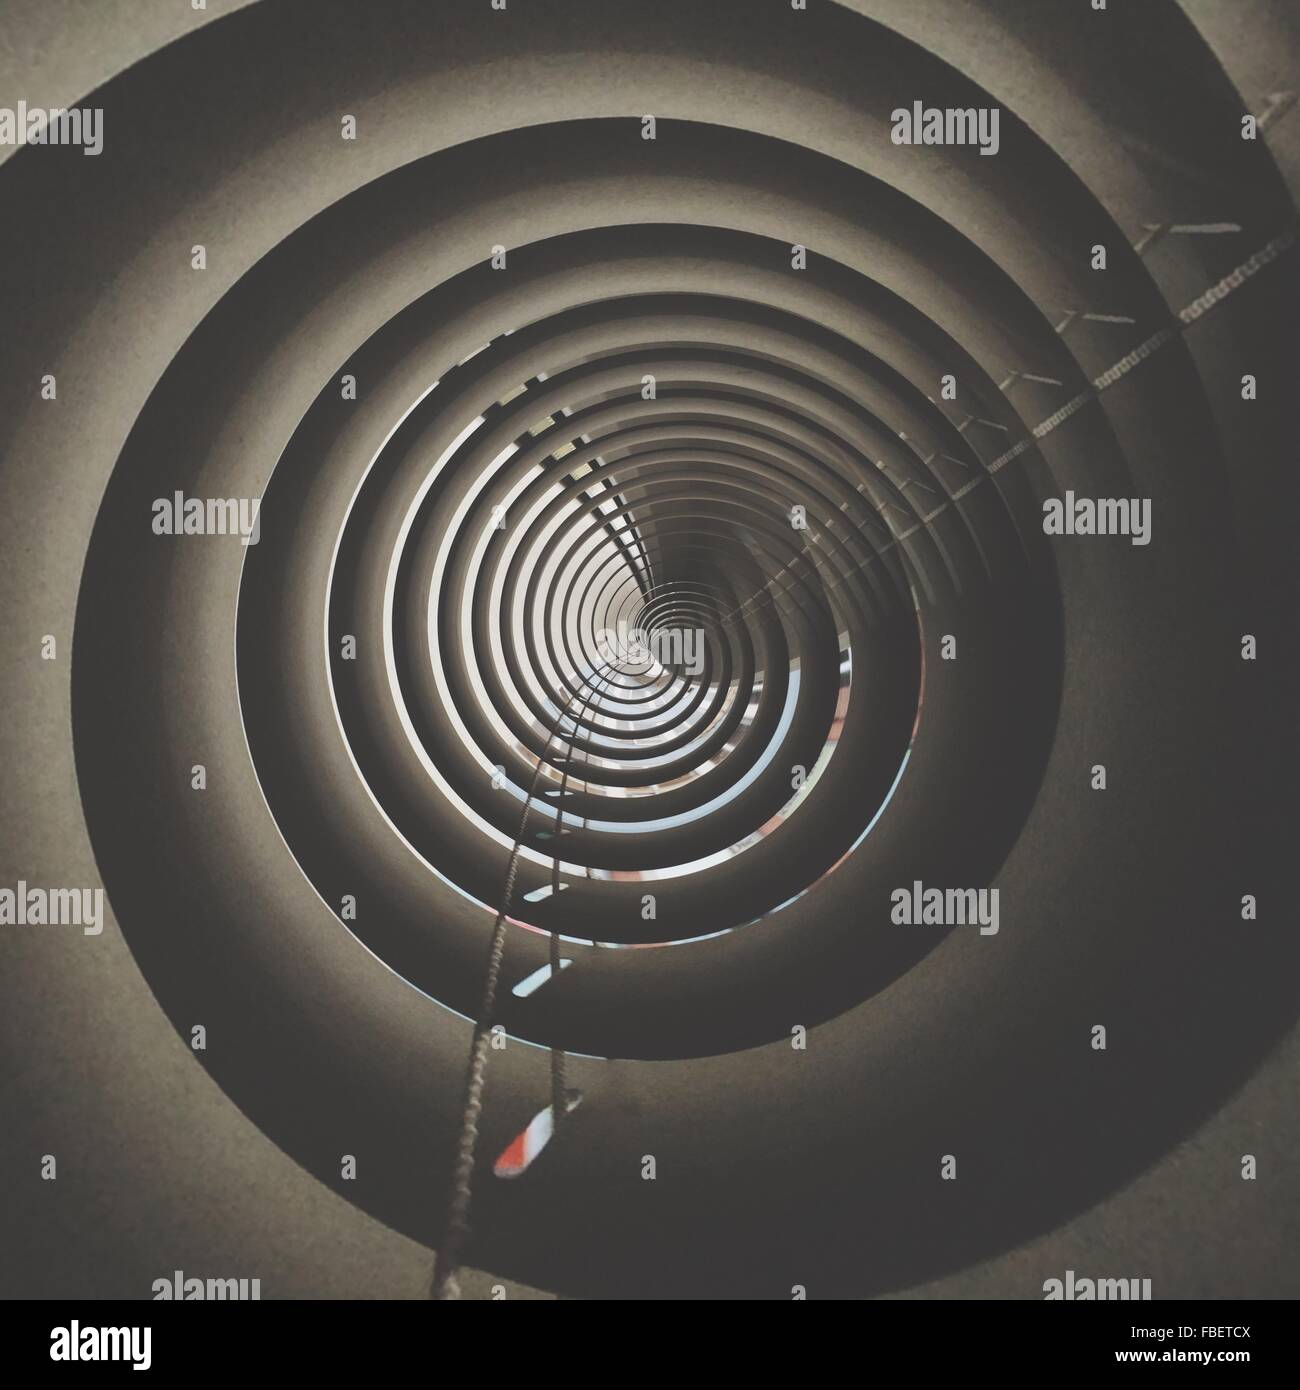 Directly Below View Of Concentric Circle Tower - Stock Image